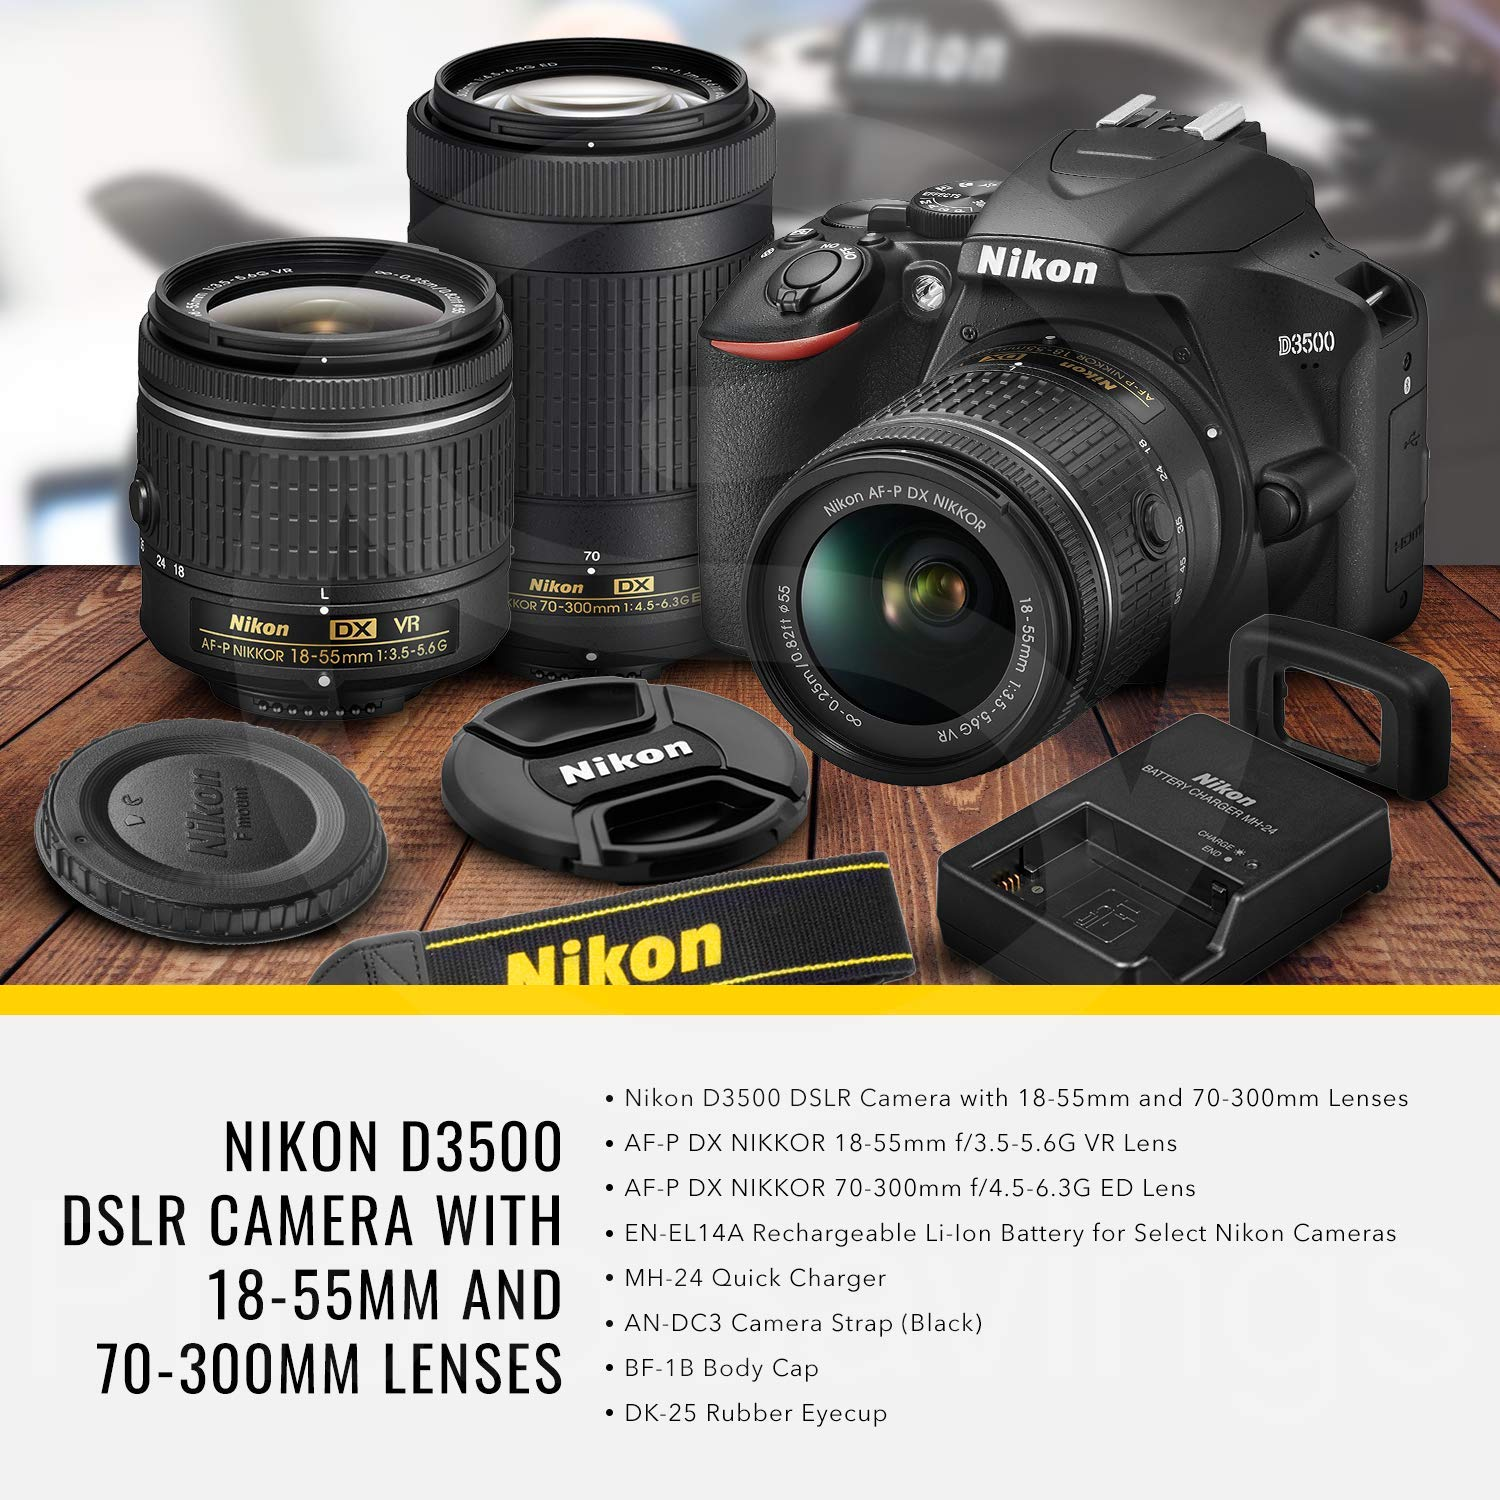 Nikon D3500 DSLR Camera with 18-55mm and 70-300mm Lenses + 32GB Card, Tripod, Flash, and Bundle by Photo Savings (Image #3)